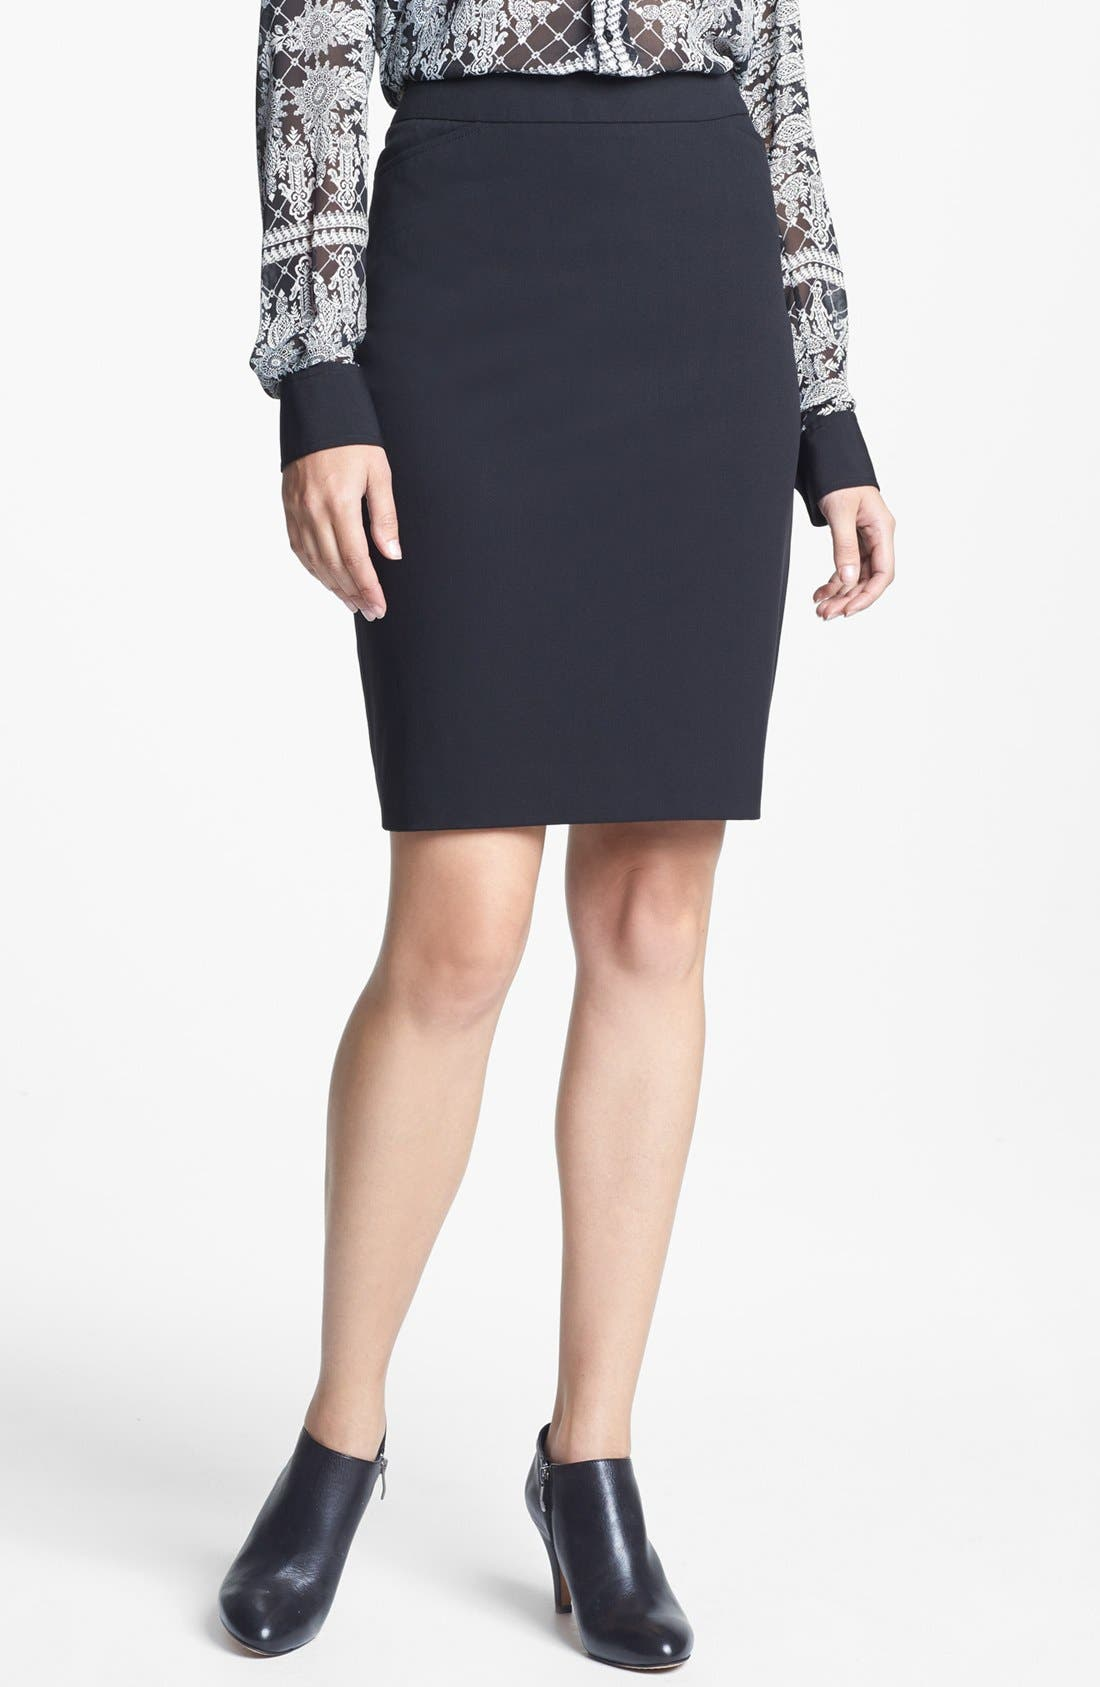 Alternate Image 1 Selected - Chaus Stretch Knit Pencil Skirt